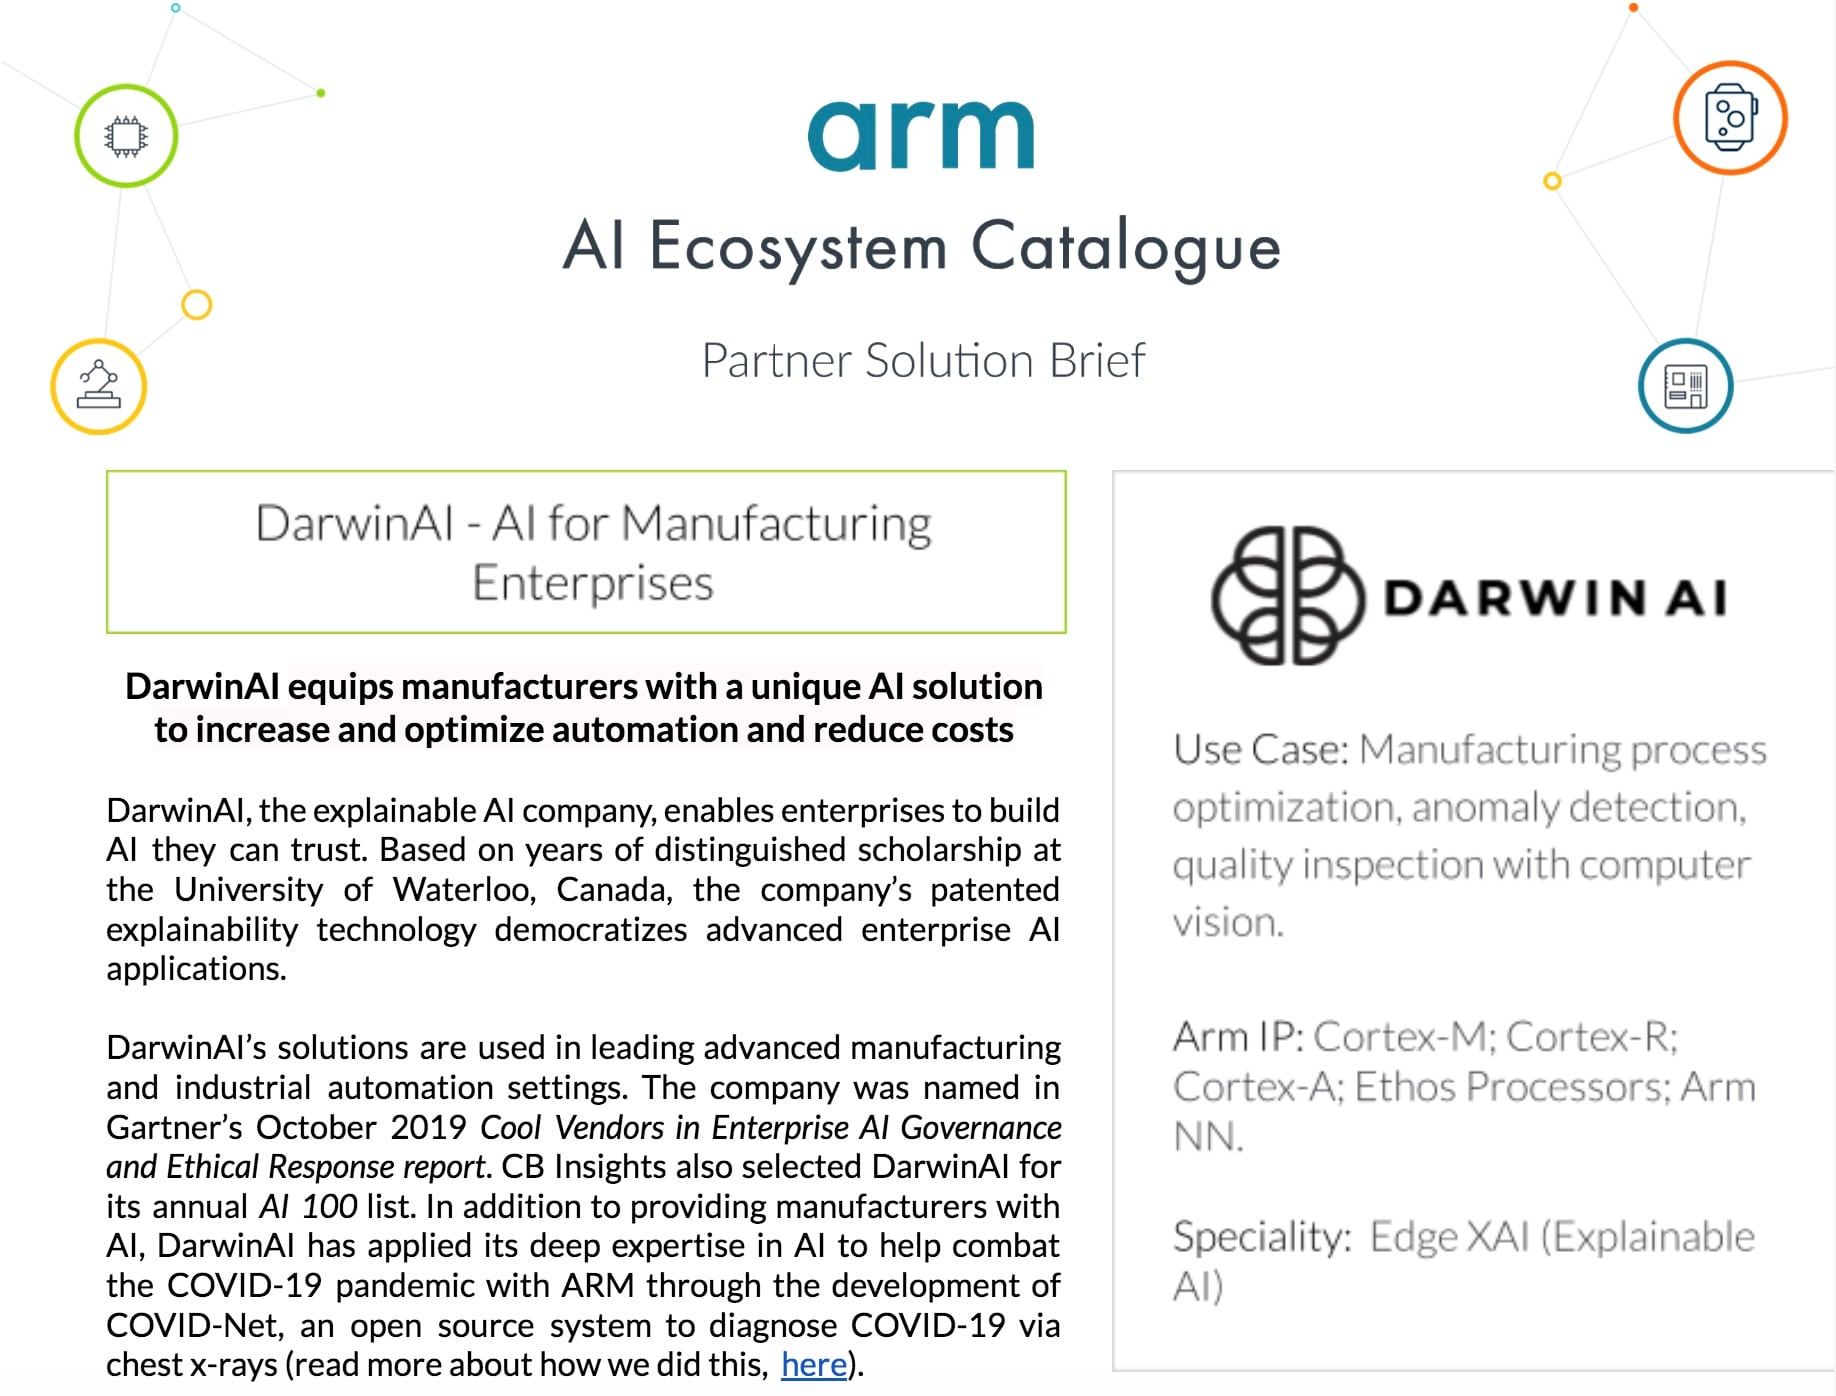 DarwinAI - Manufacturing XAI At The Edge